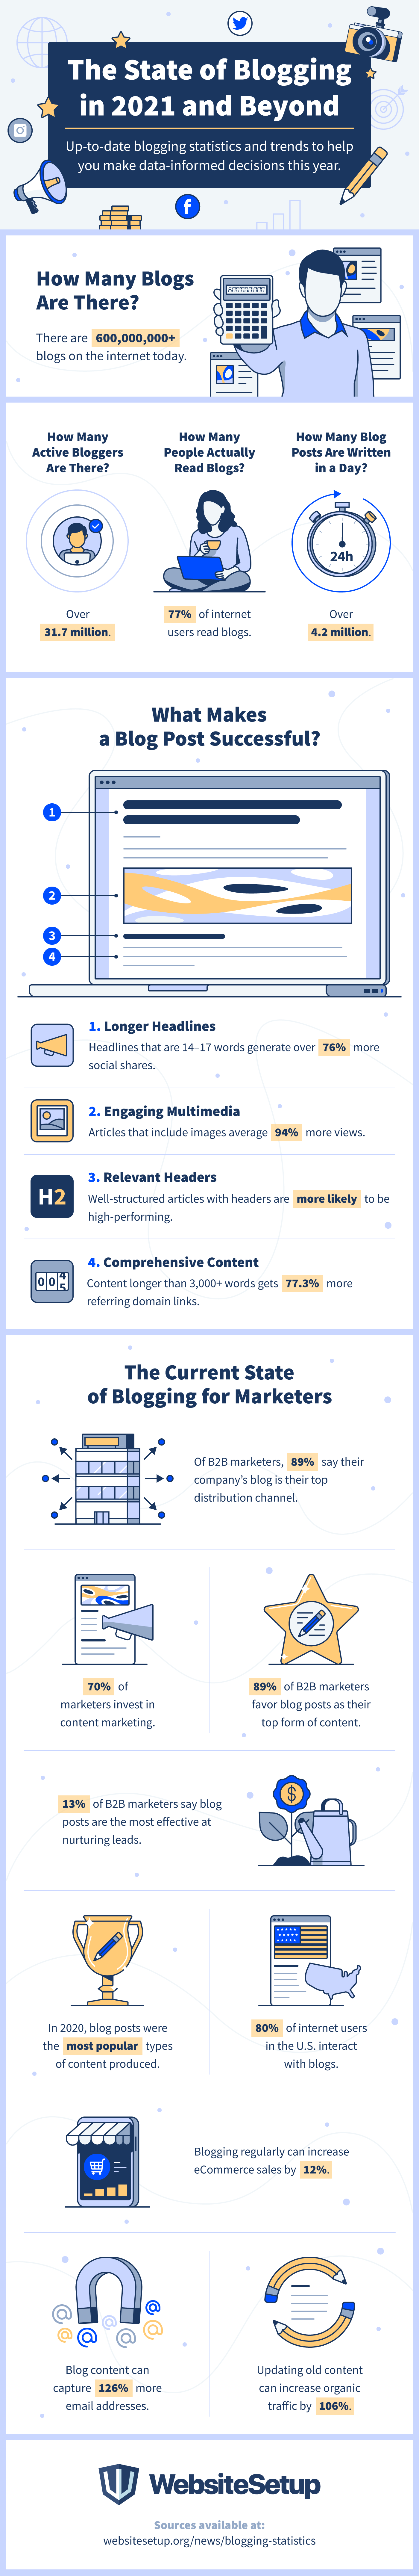 The state of blogging in 2021